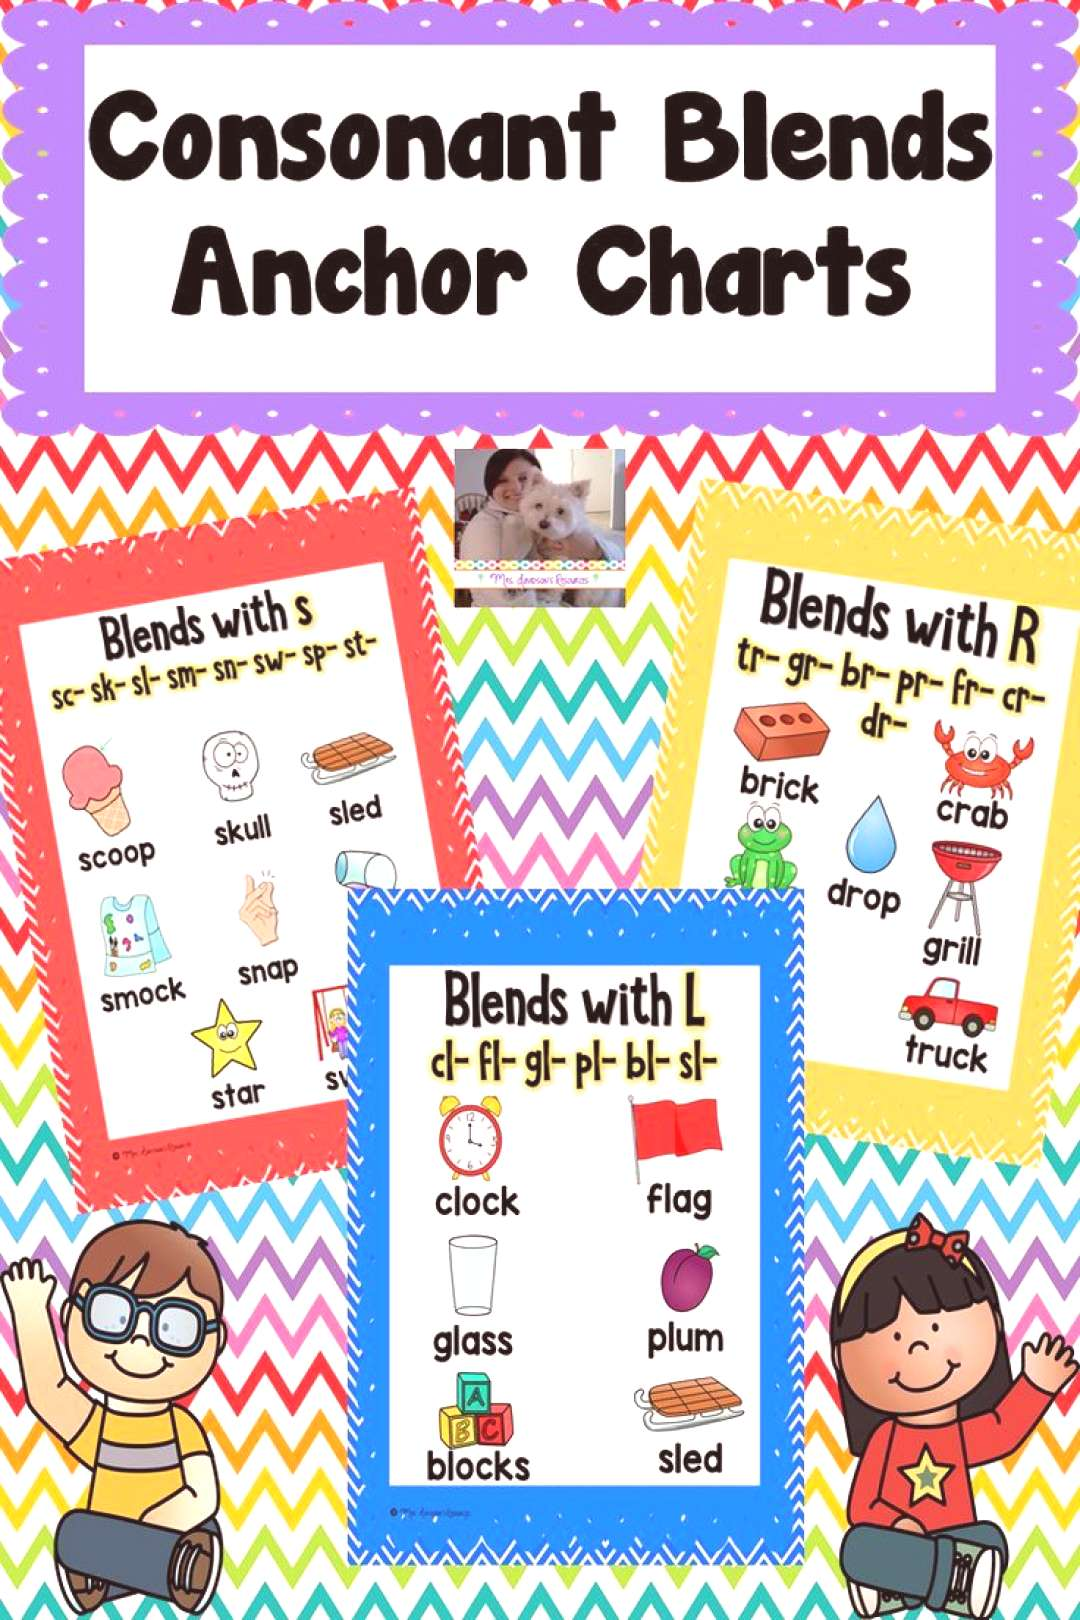 Consonant Blends Anchor Charts Here are consonant blends anchor charts that will help your students